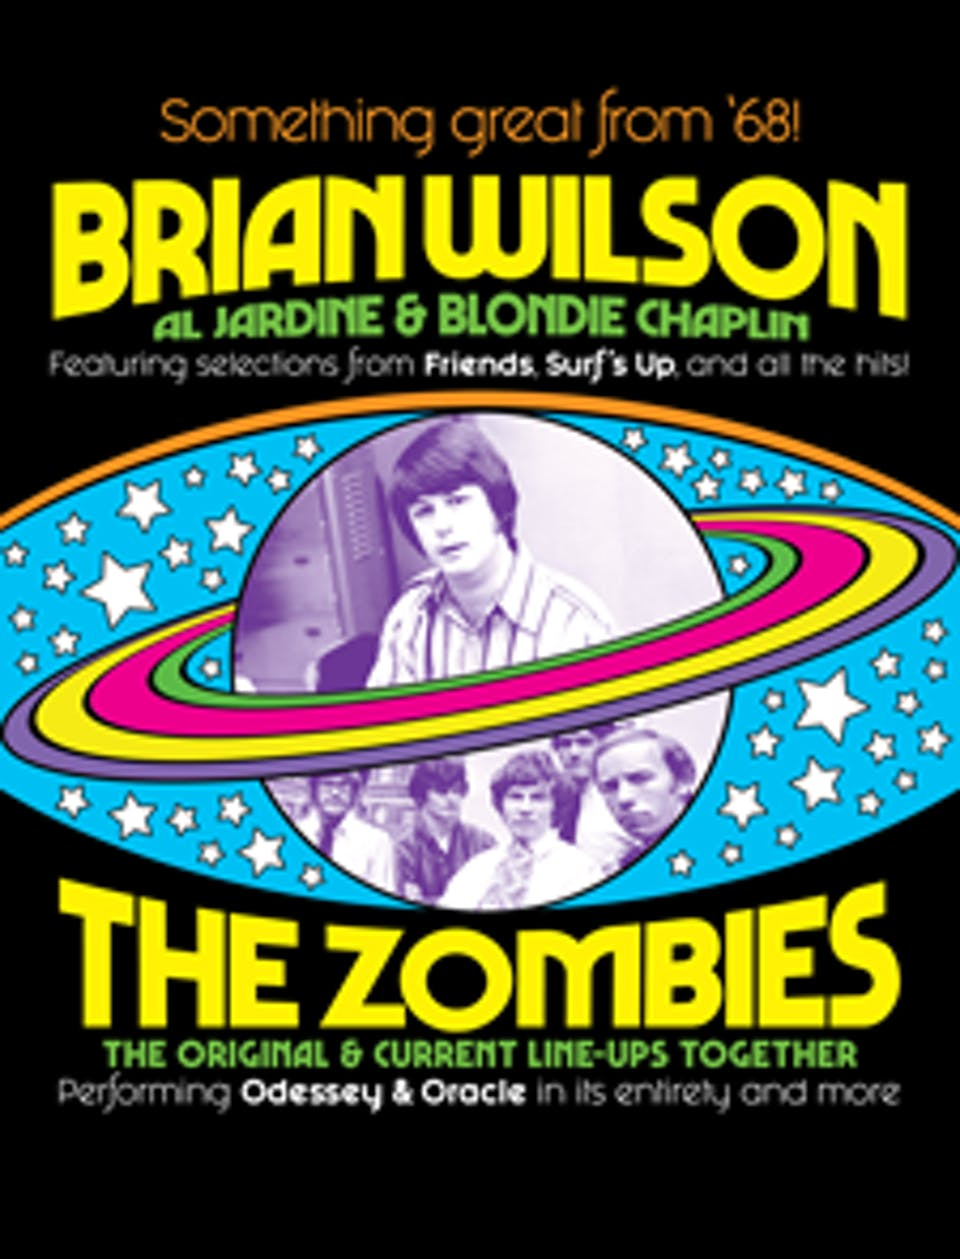 Brian Wilson and The Zombies: Something Great From '68 Tour